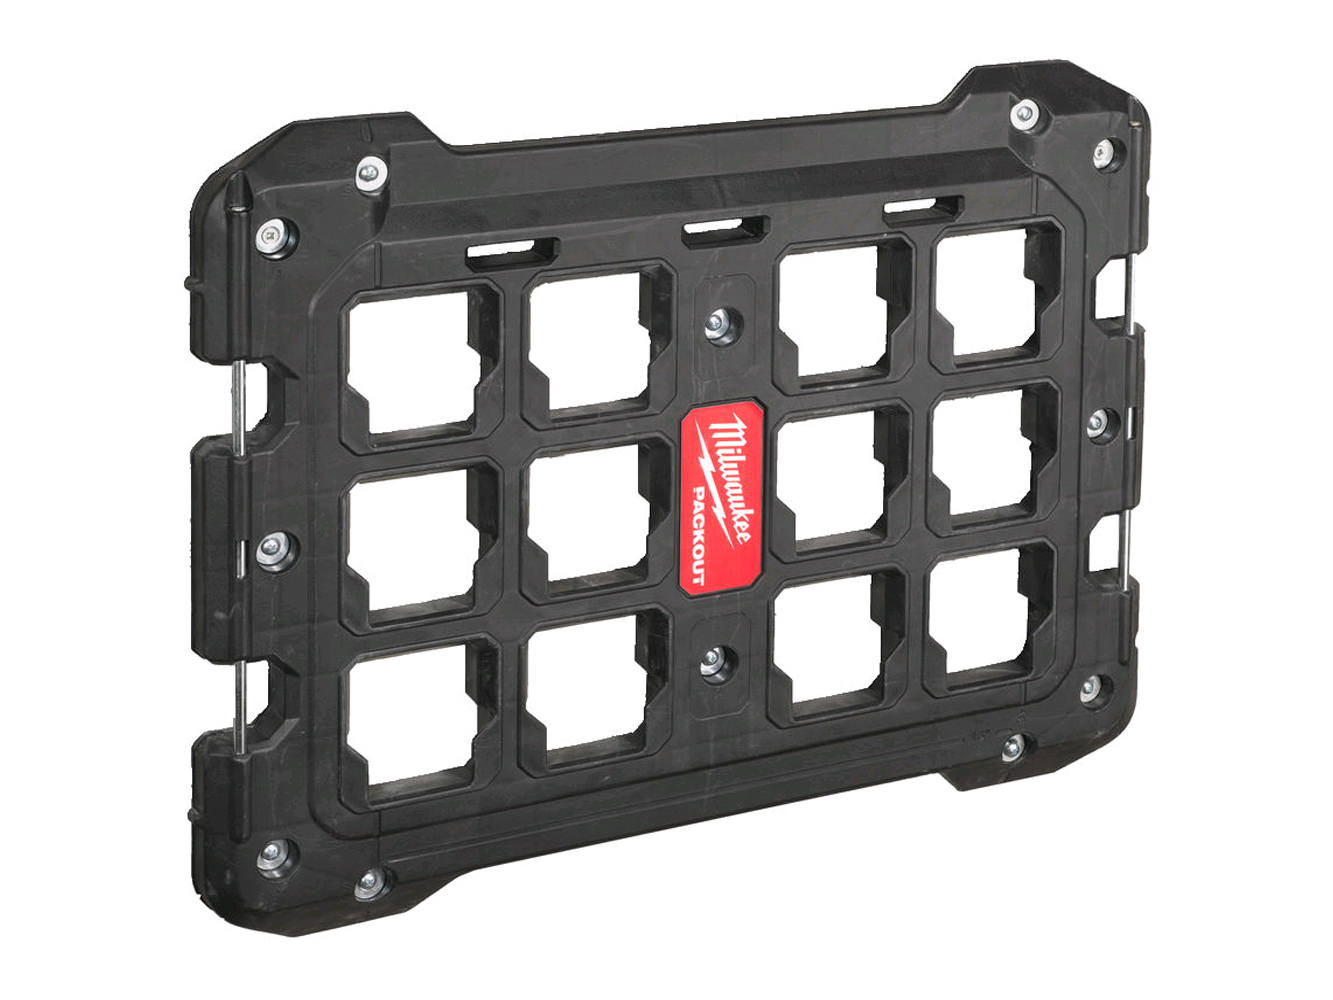 Milwaukee Packout - Packout Wall Mounting Plate - 4932471638